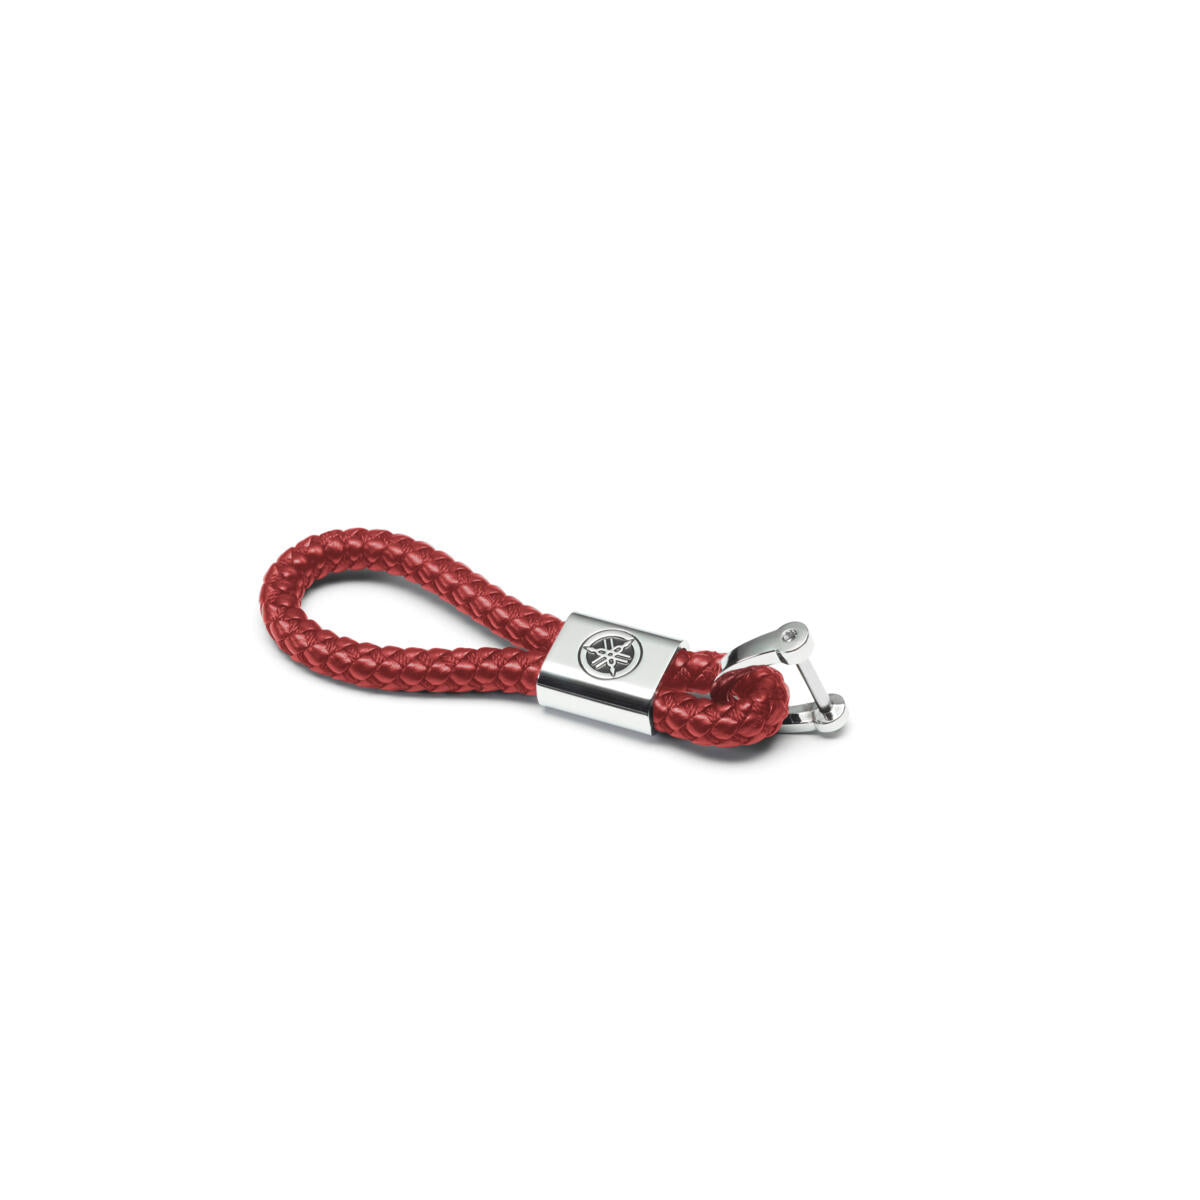 REVS Leather Key Ring - Black / Red